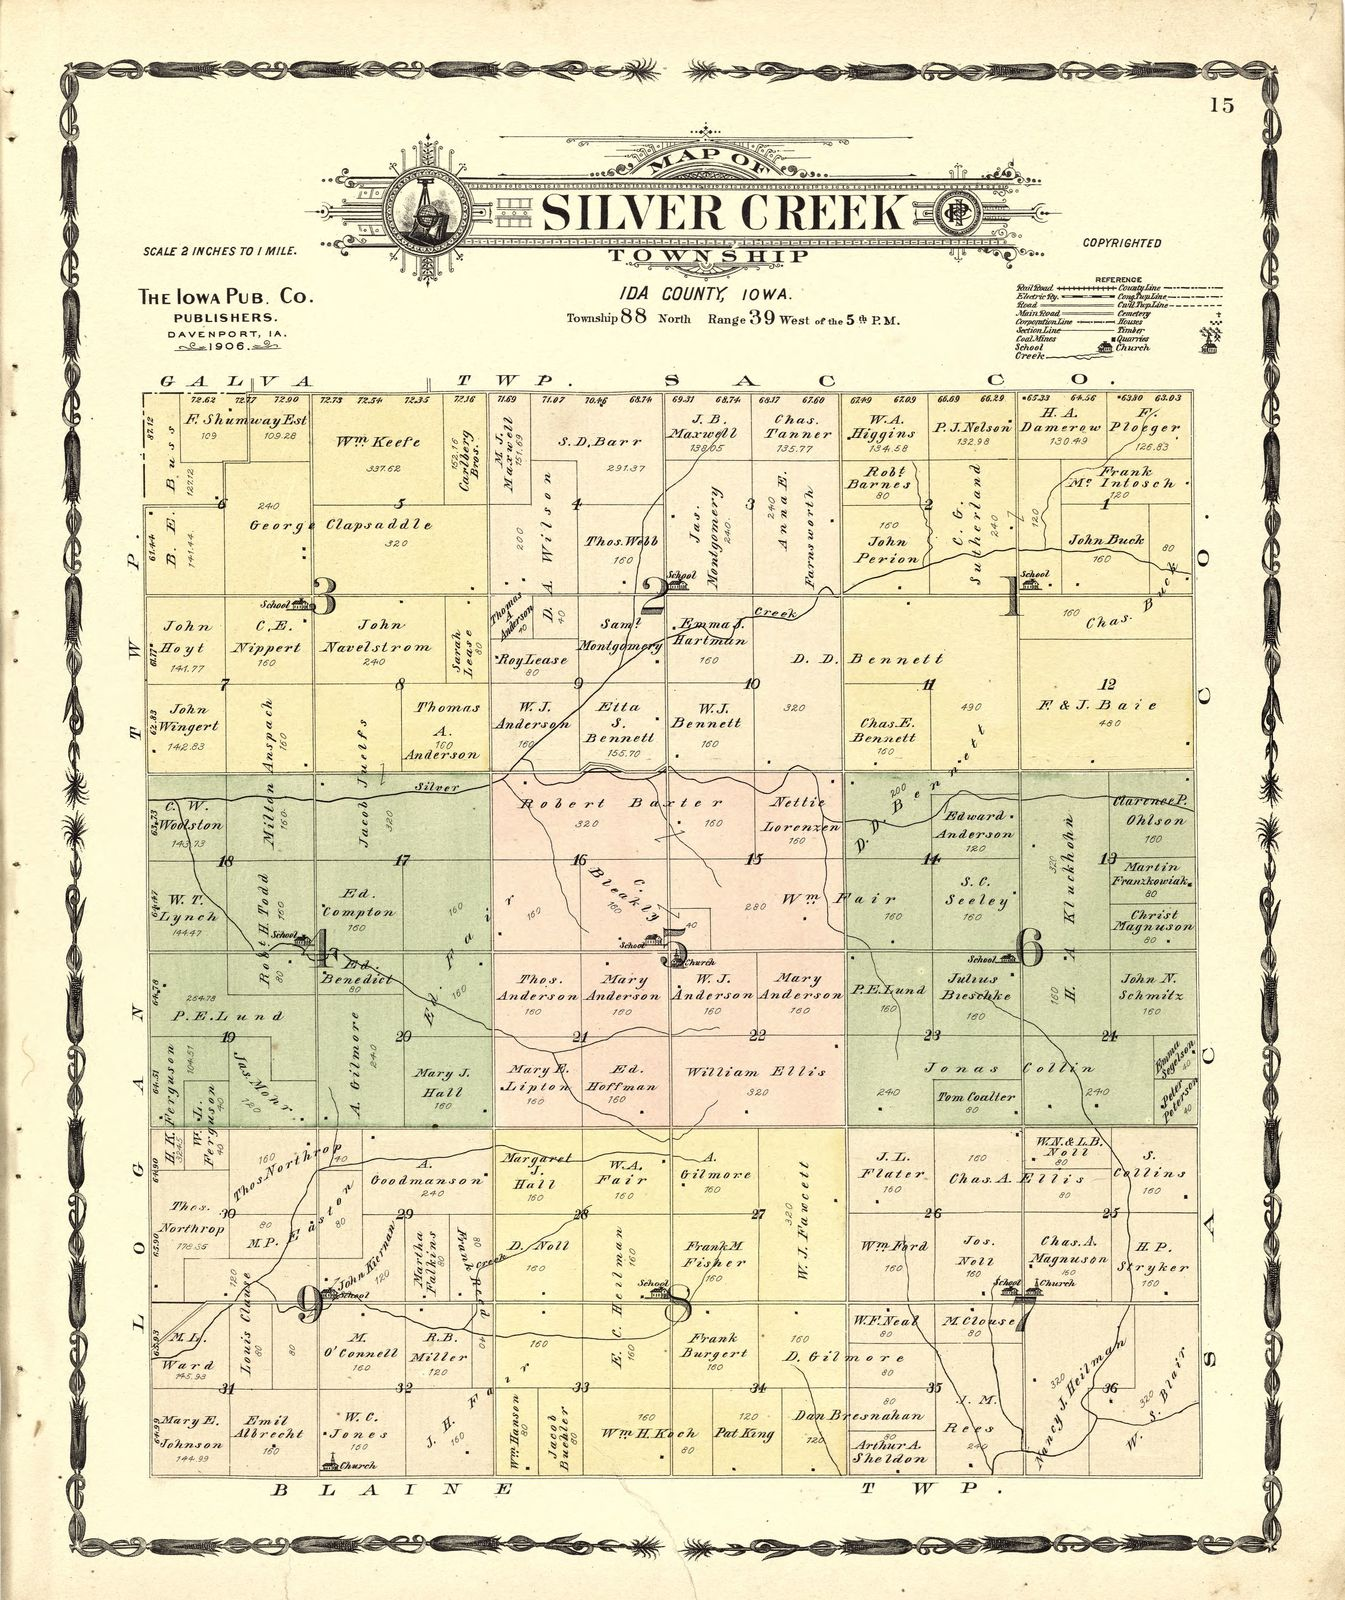 Atlas of Ida County, Iowa : containing maps of villages, cities and townships of the county, maps of state, United States and world, farmers directory, business directory, general information.